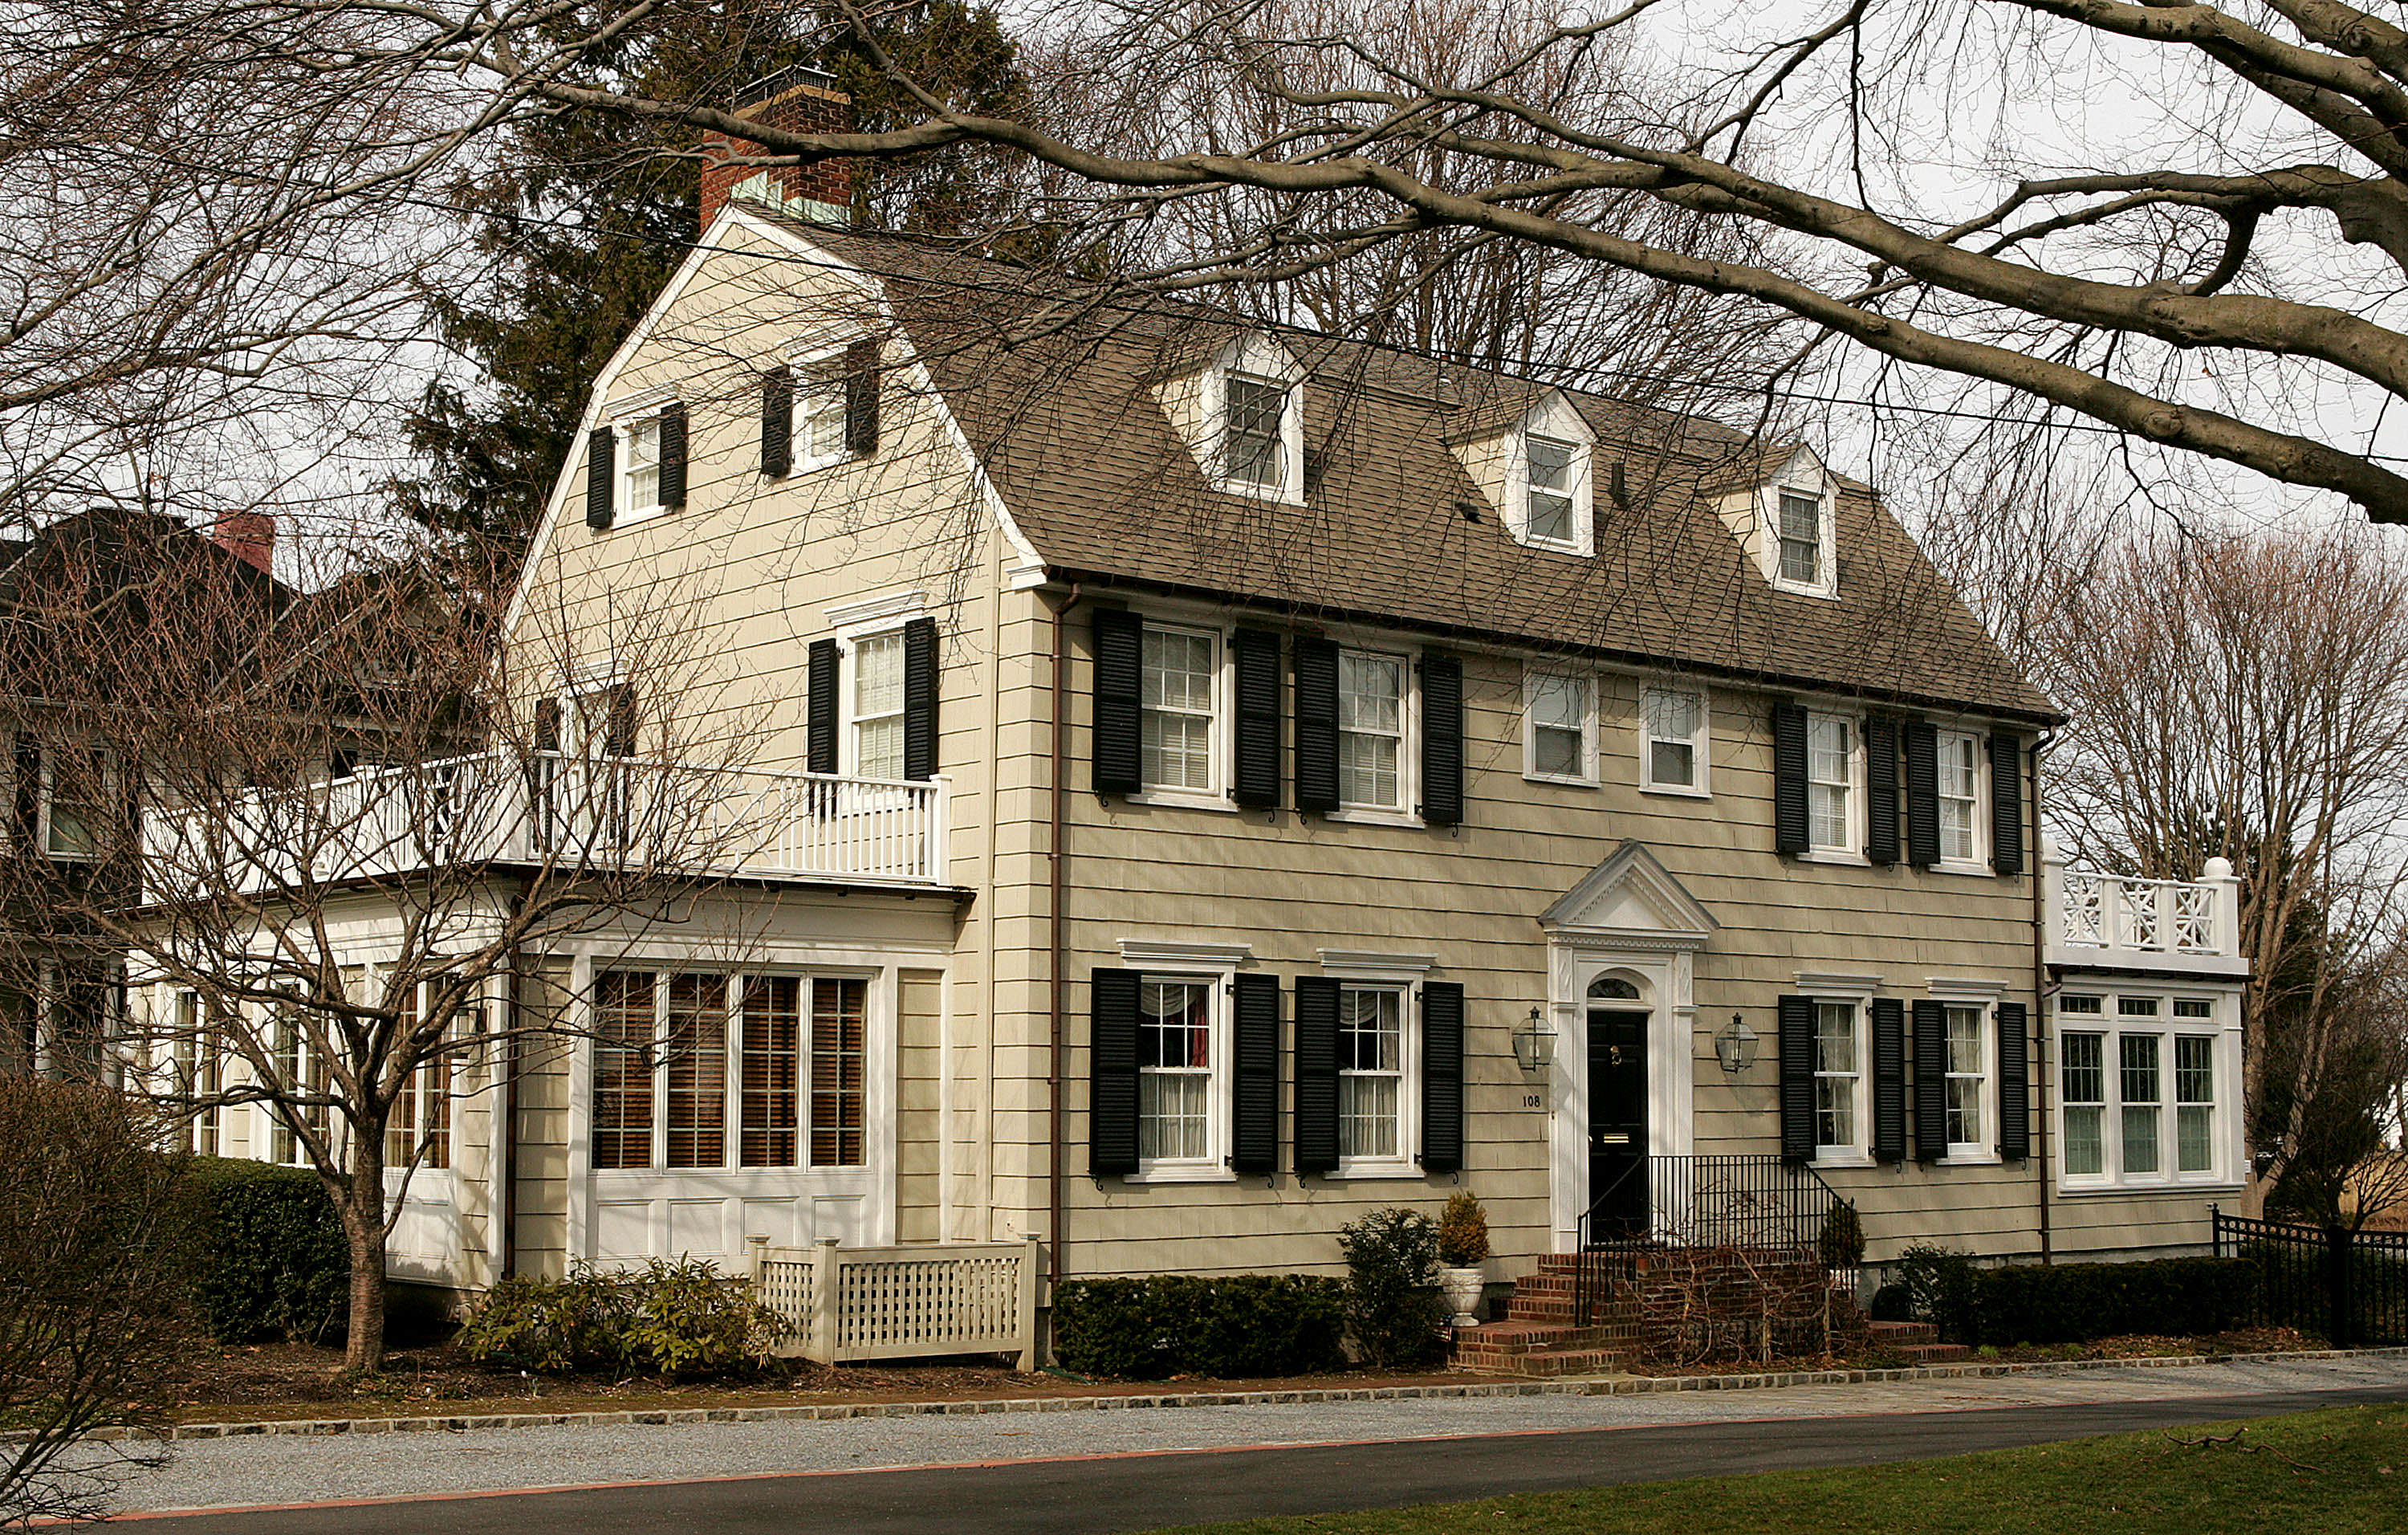 GettyImages 53314654 The Real Amityville Horror House Up For Sale, Take A Look Inside